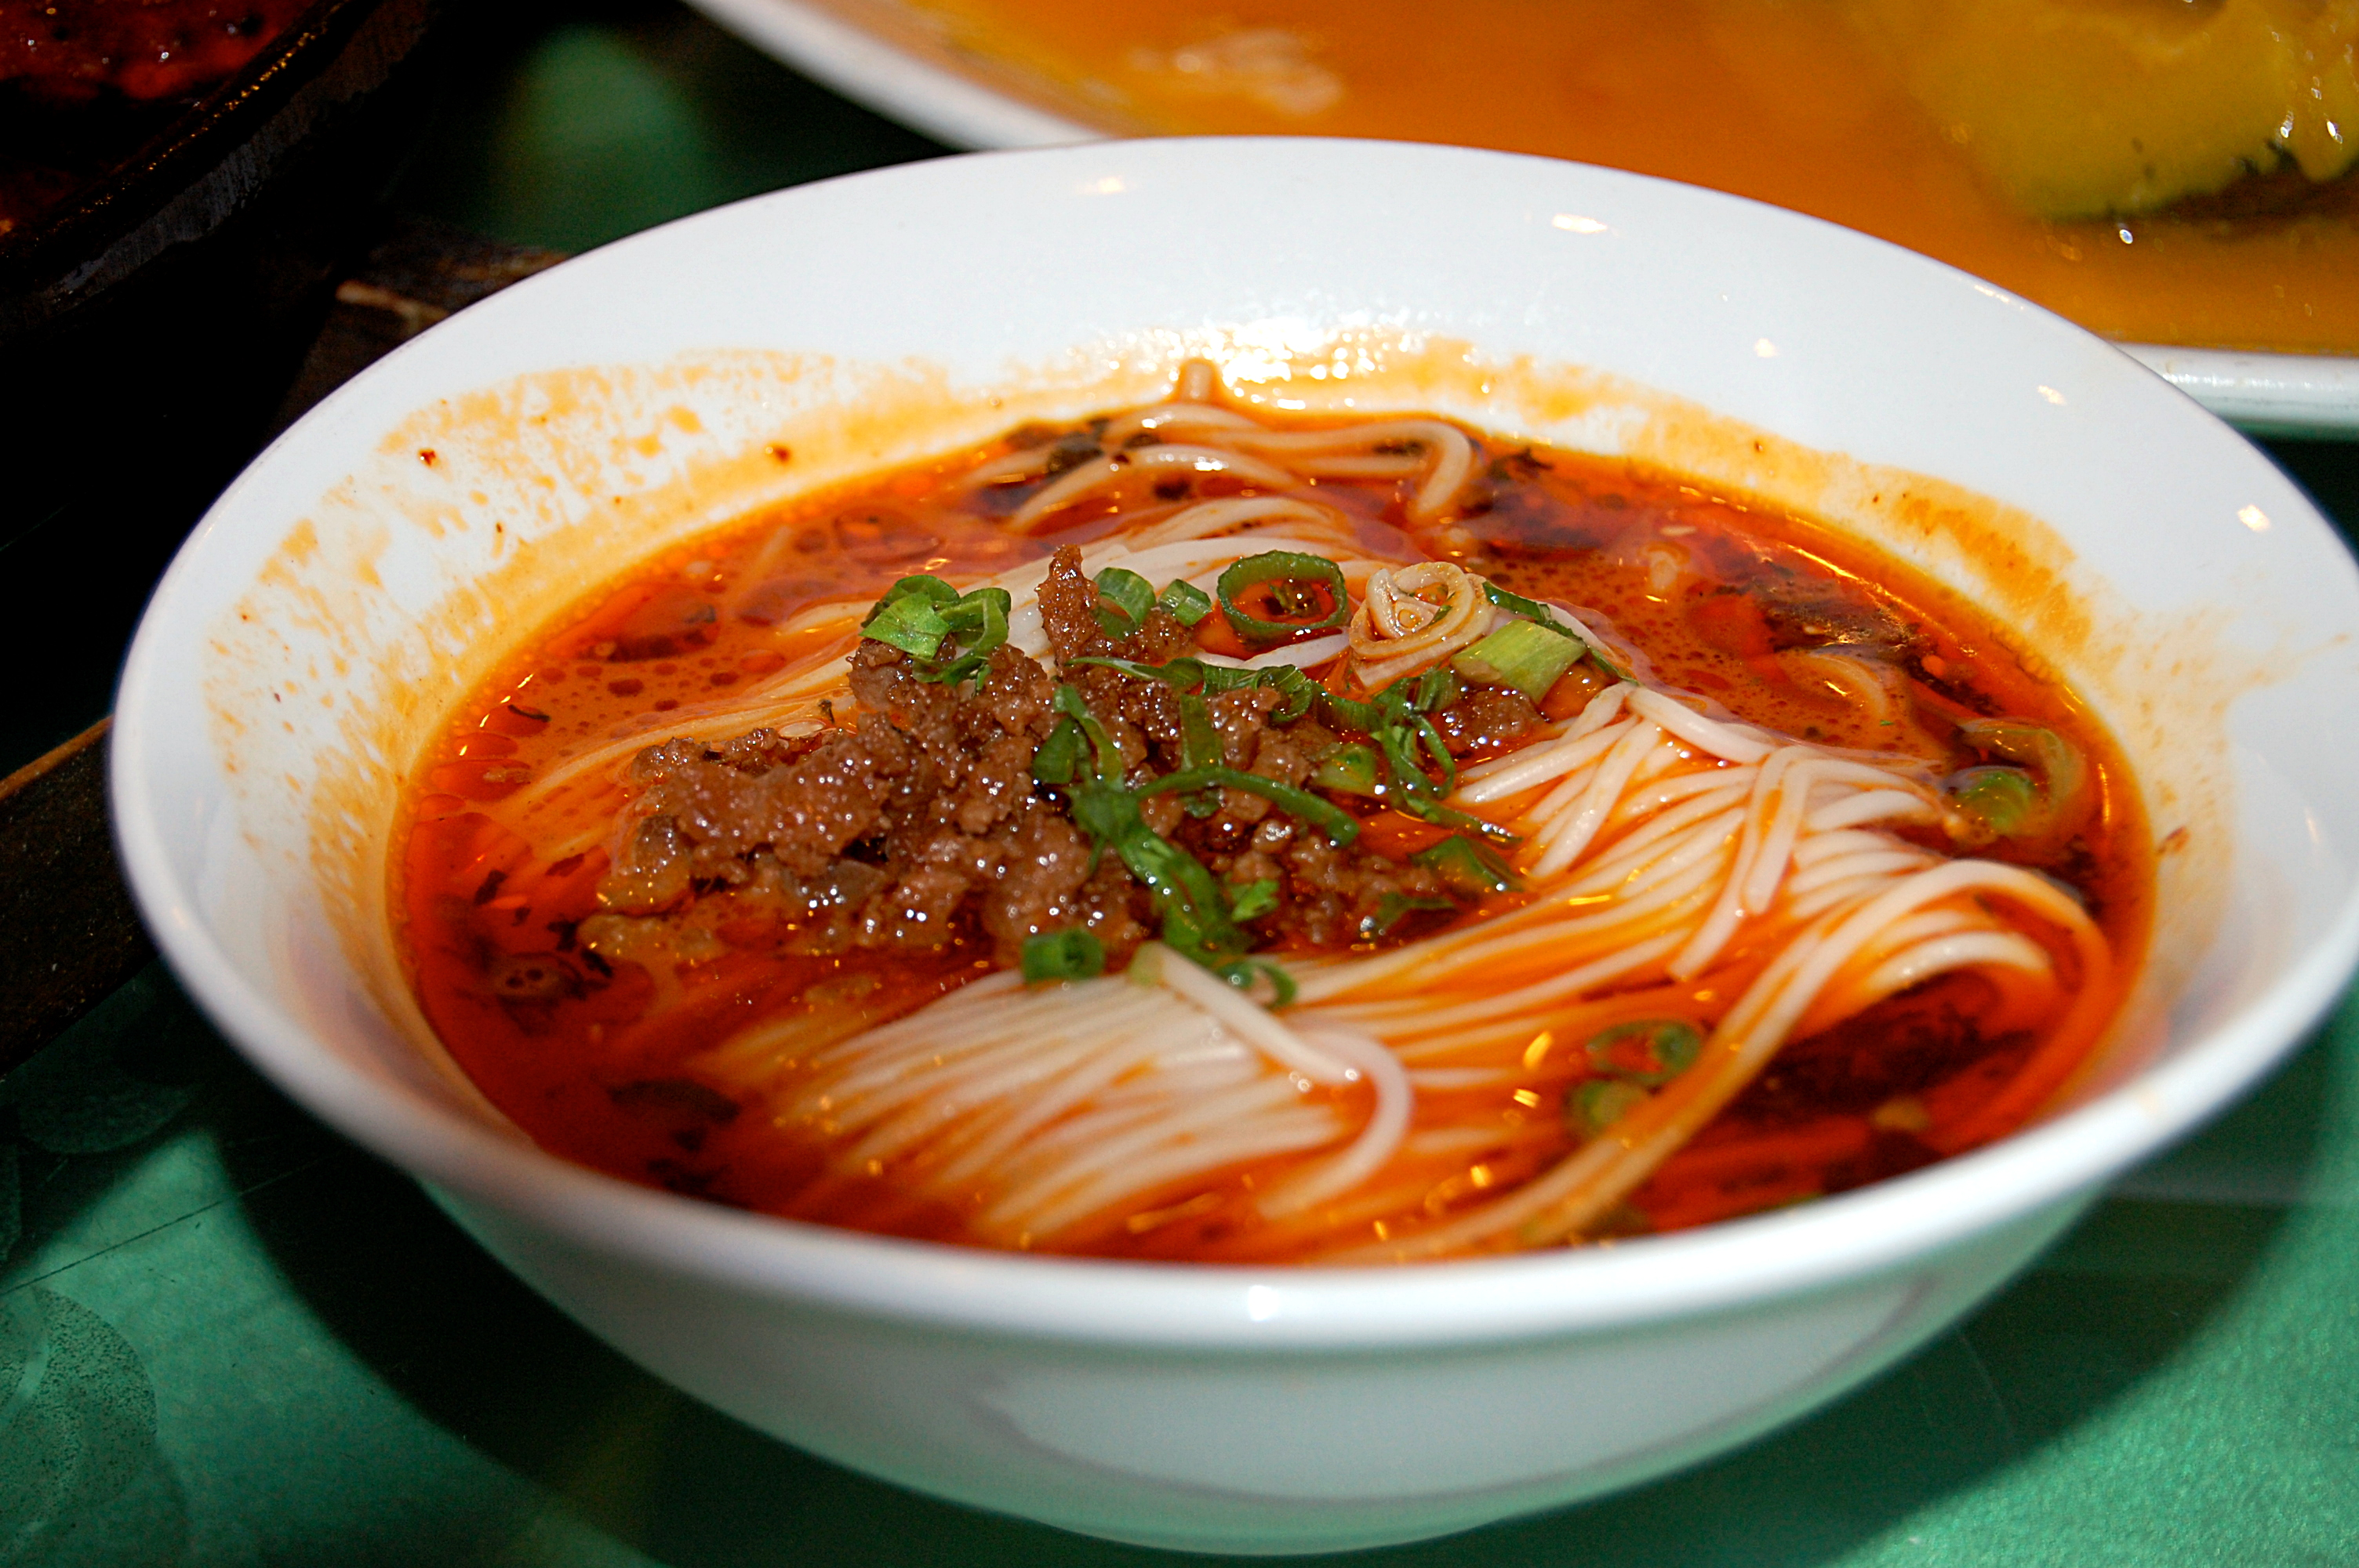 File:Dan-dan noodles, Shanghai.jpg - Wikipedia, the free encyclopedia